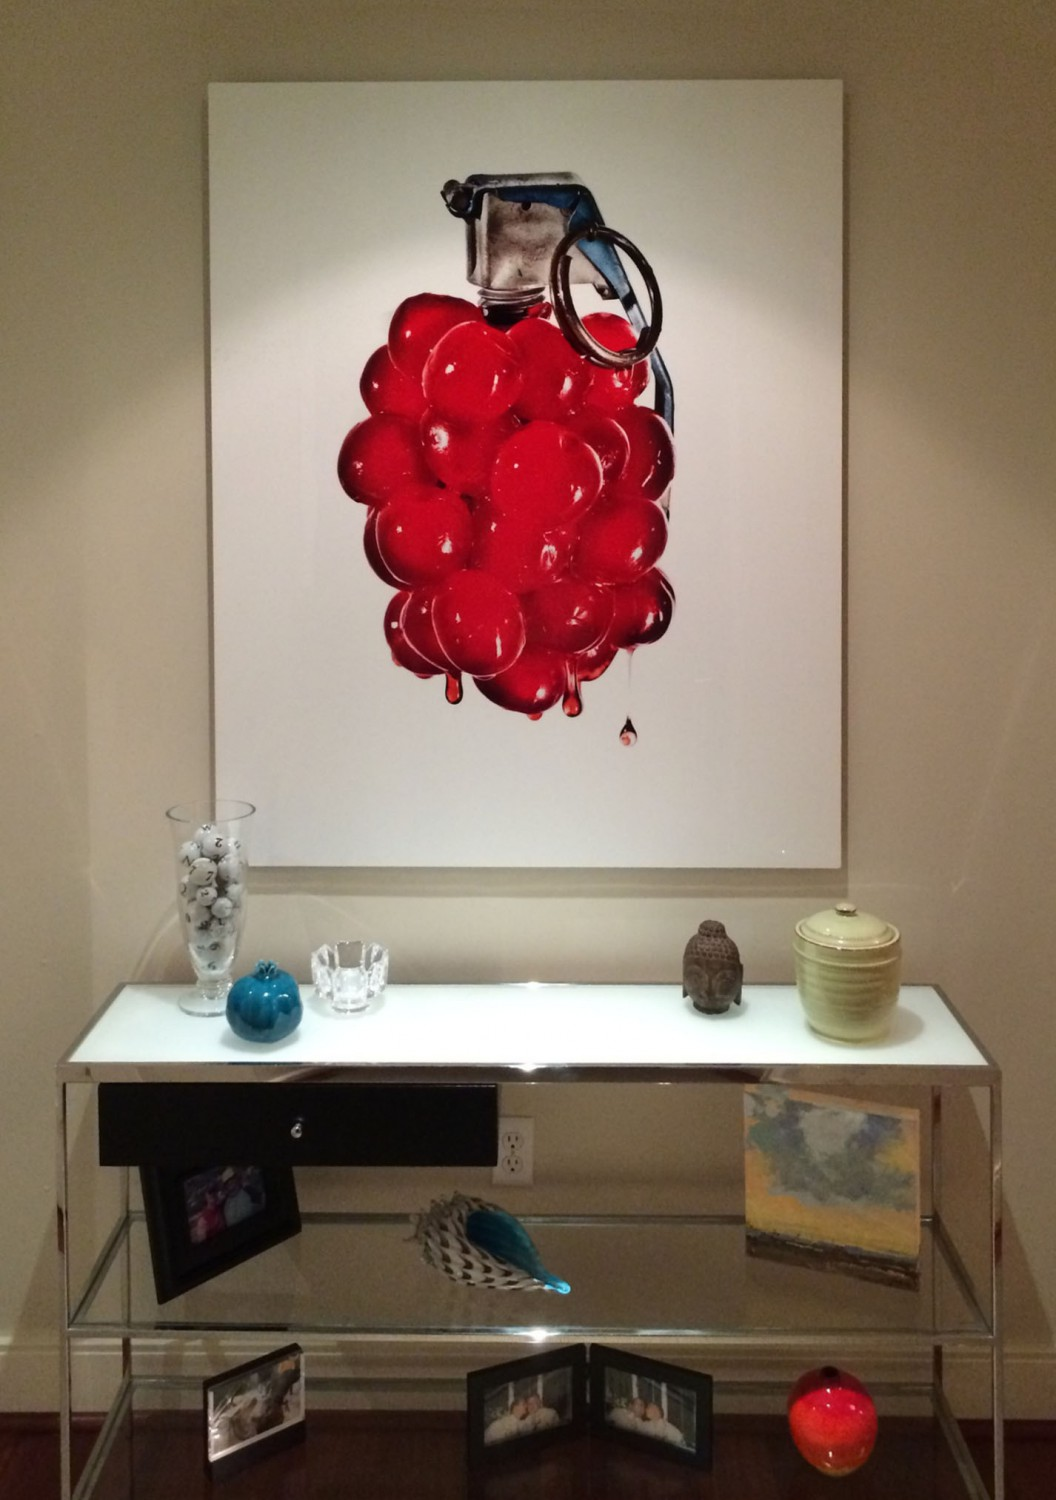 Matt McKee's Cherry Bomb! installed in art collector's home